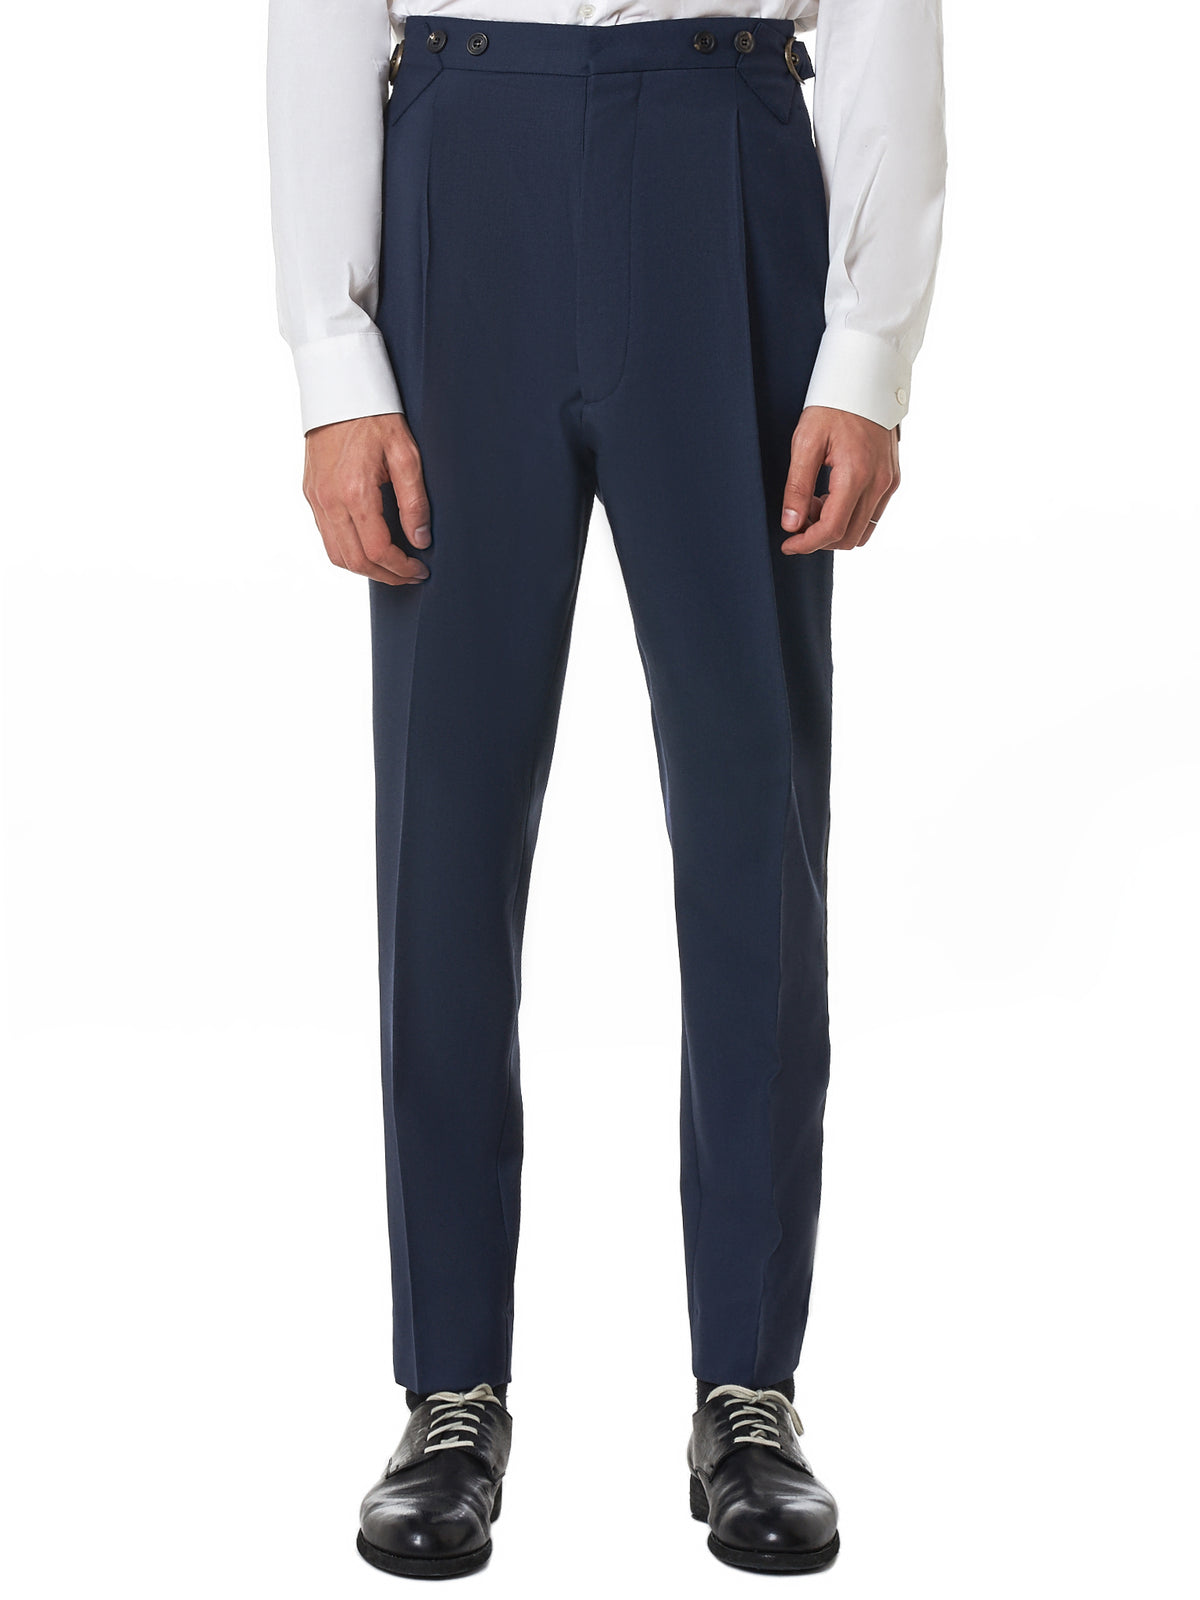 Vivienne Westwood Navy Trouser - Hlorenzo Front